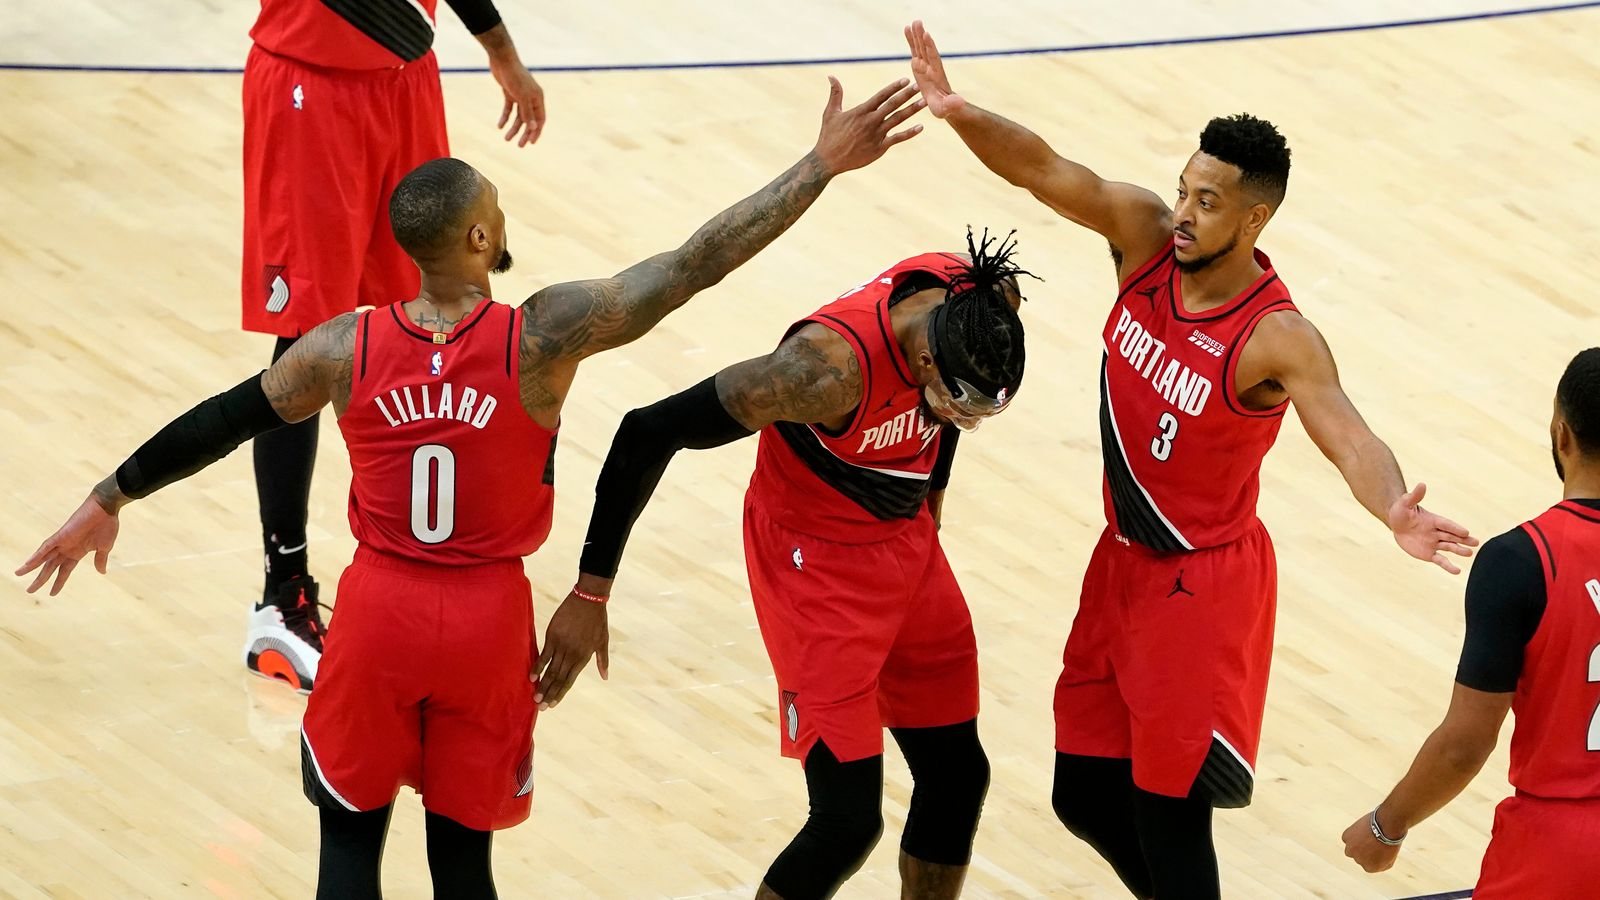 NBA regular season set for dramatic finale: Playoff seeding, Play-In places and scoring title to be decided